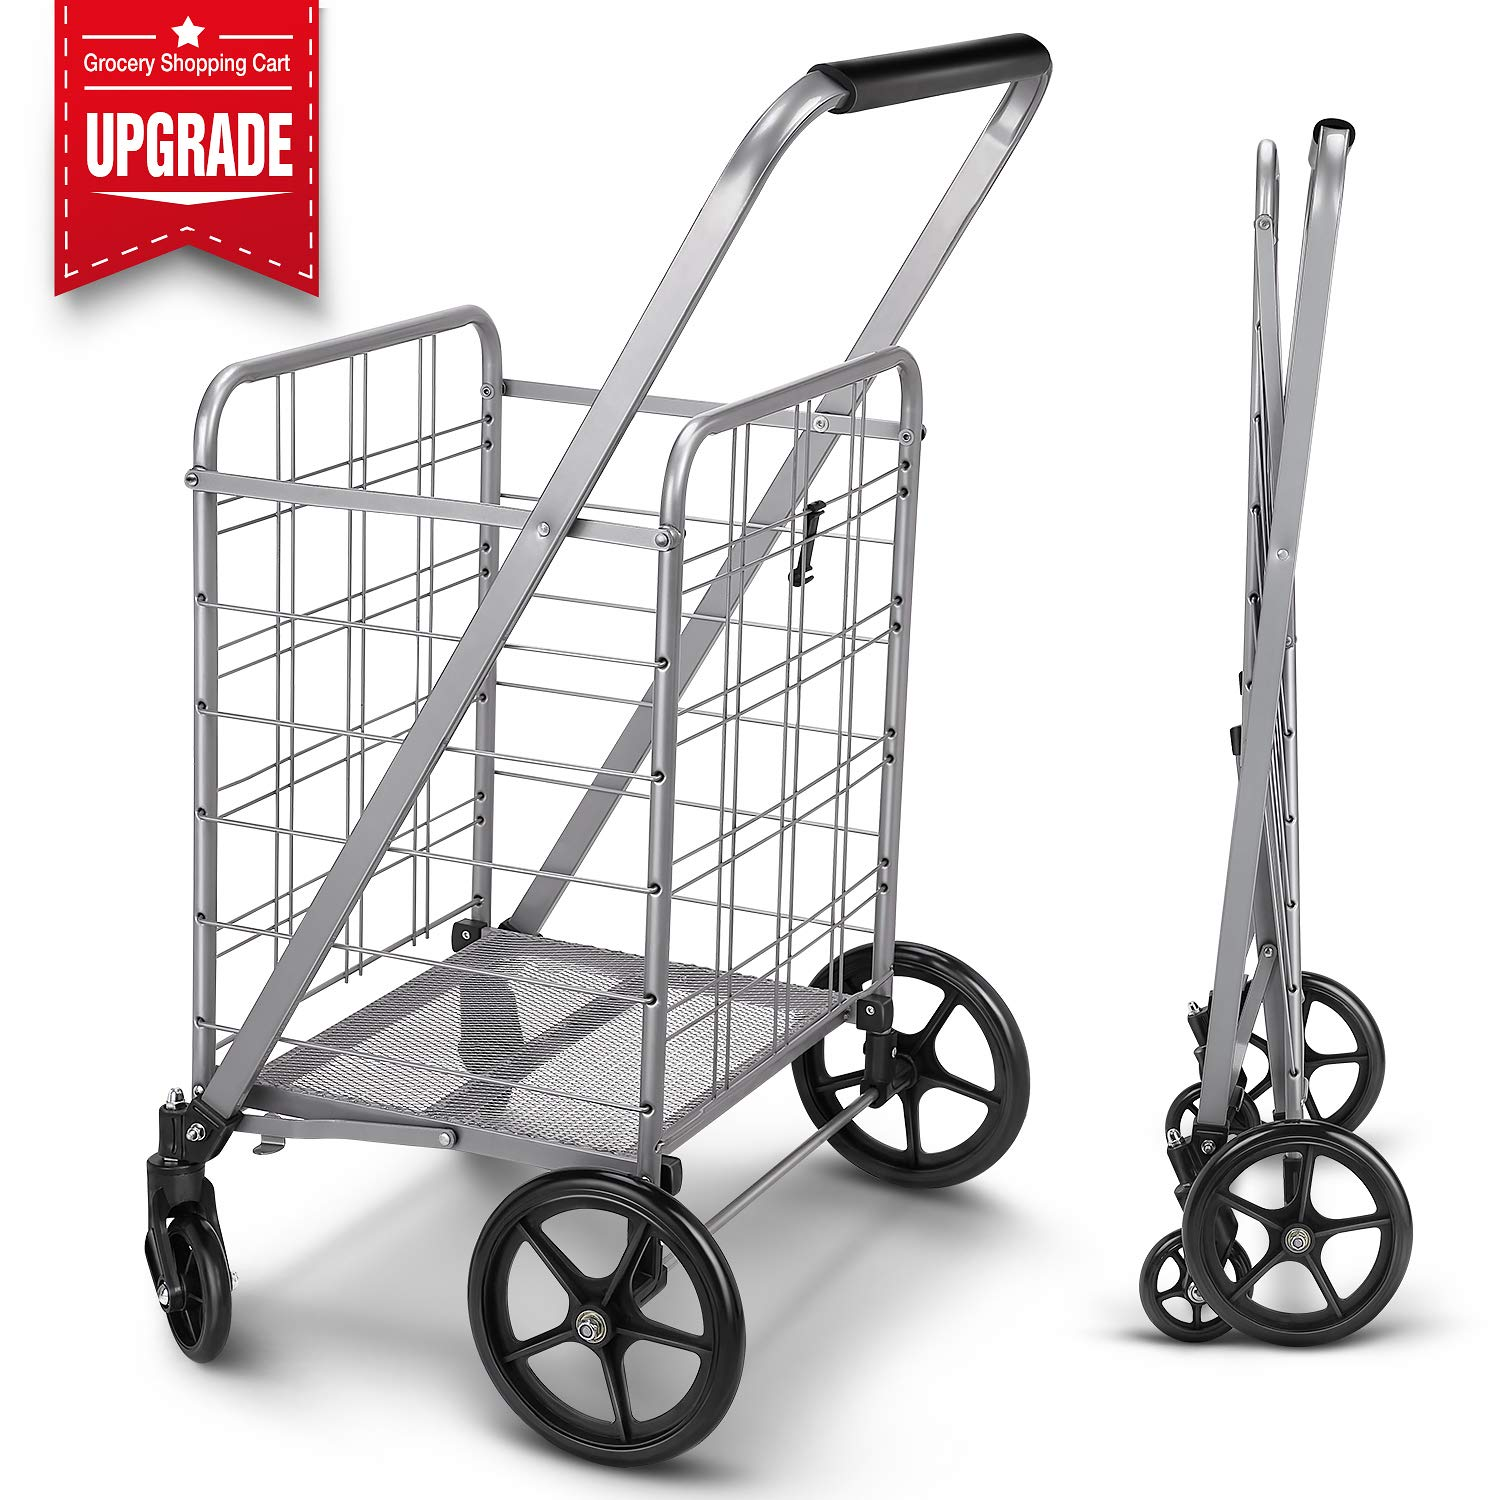 Newly Released Grocery Utility Flat Folding Shopping Cart with 360° Rolling Swivel Wheels Heavy Duty & Light Weight Extra Large Utility Cart by winkeep